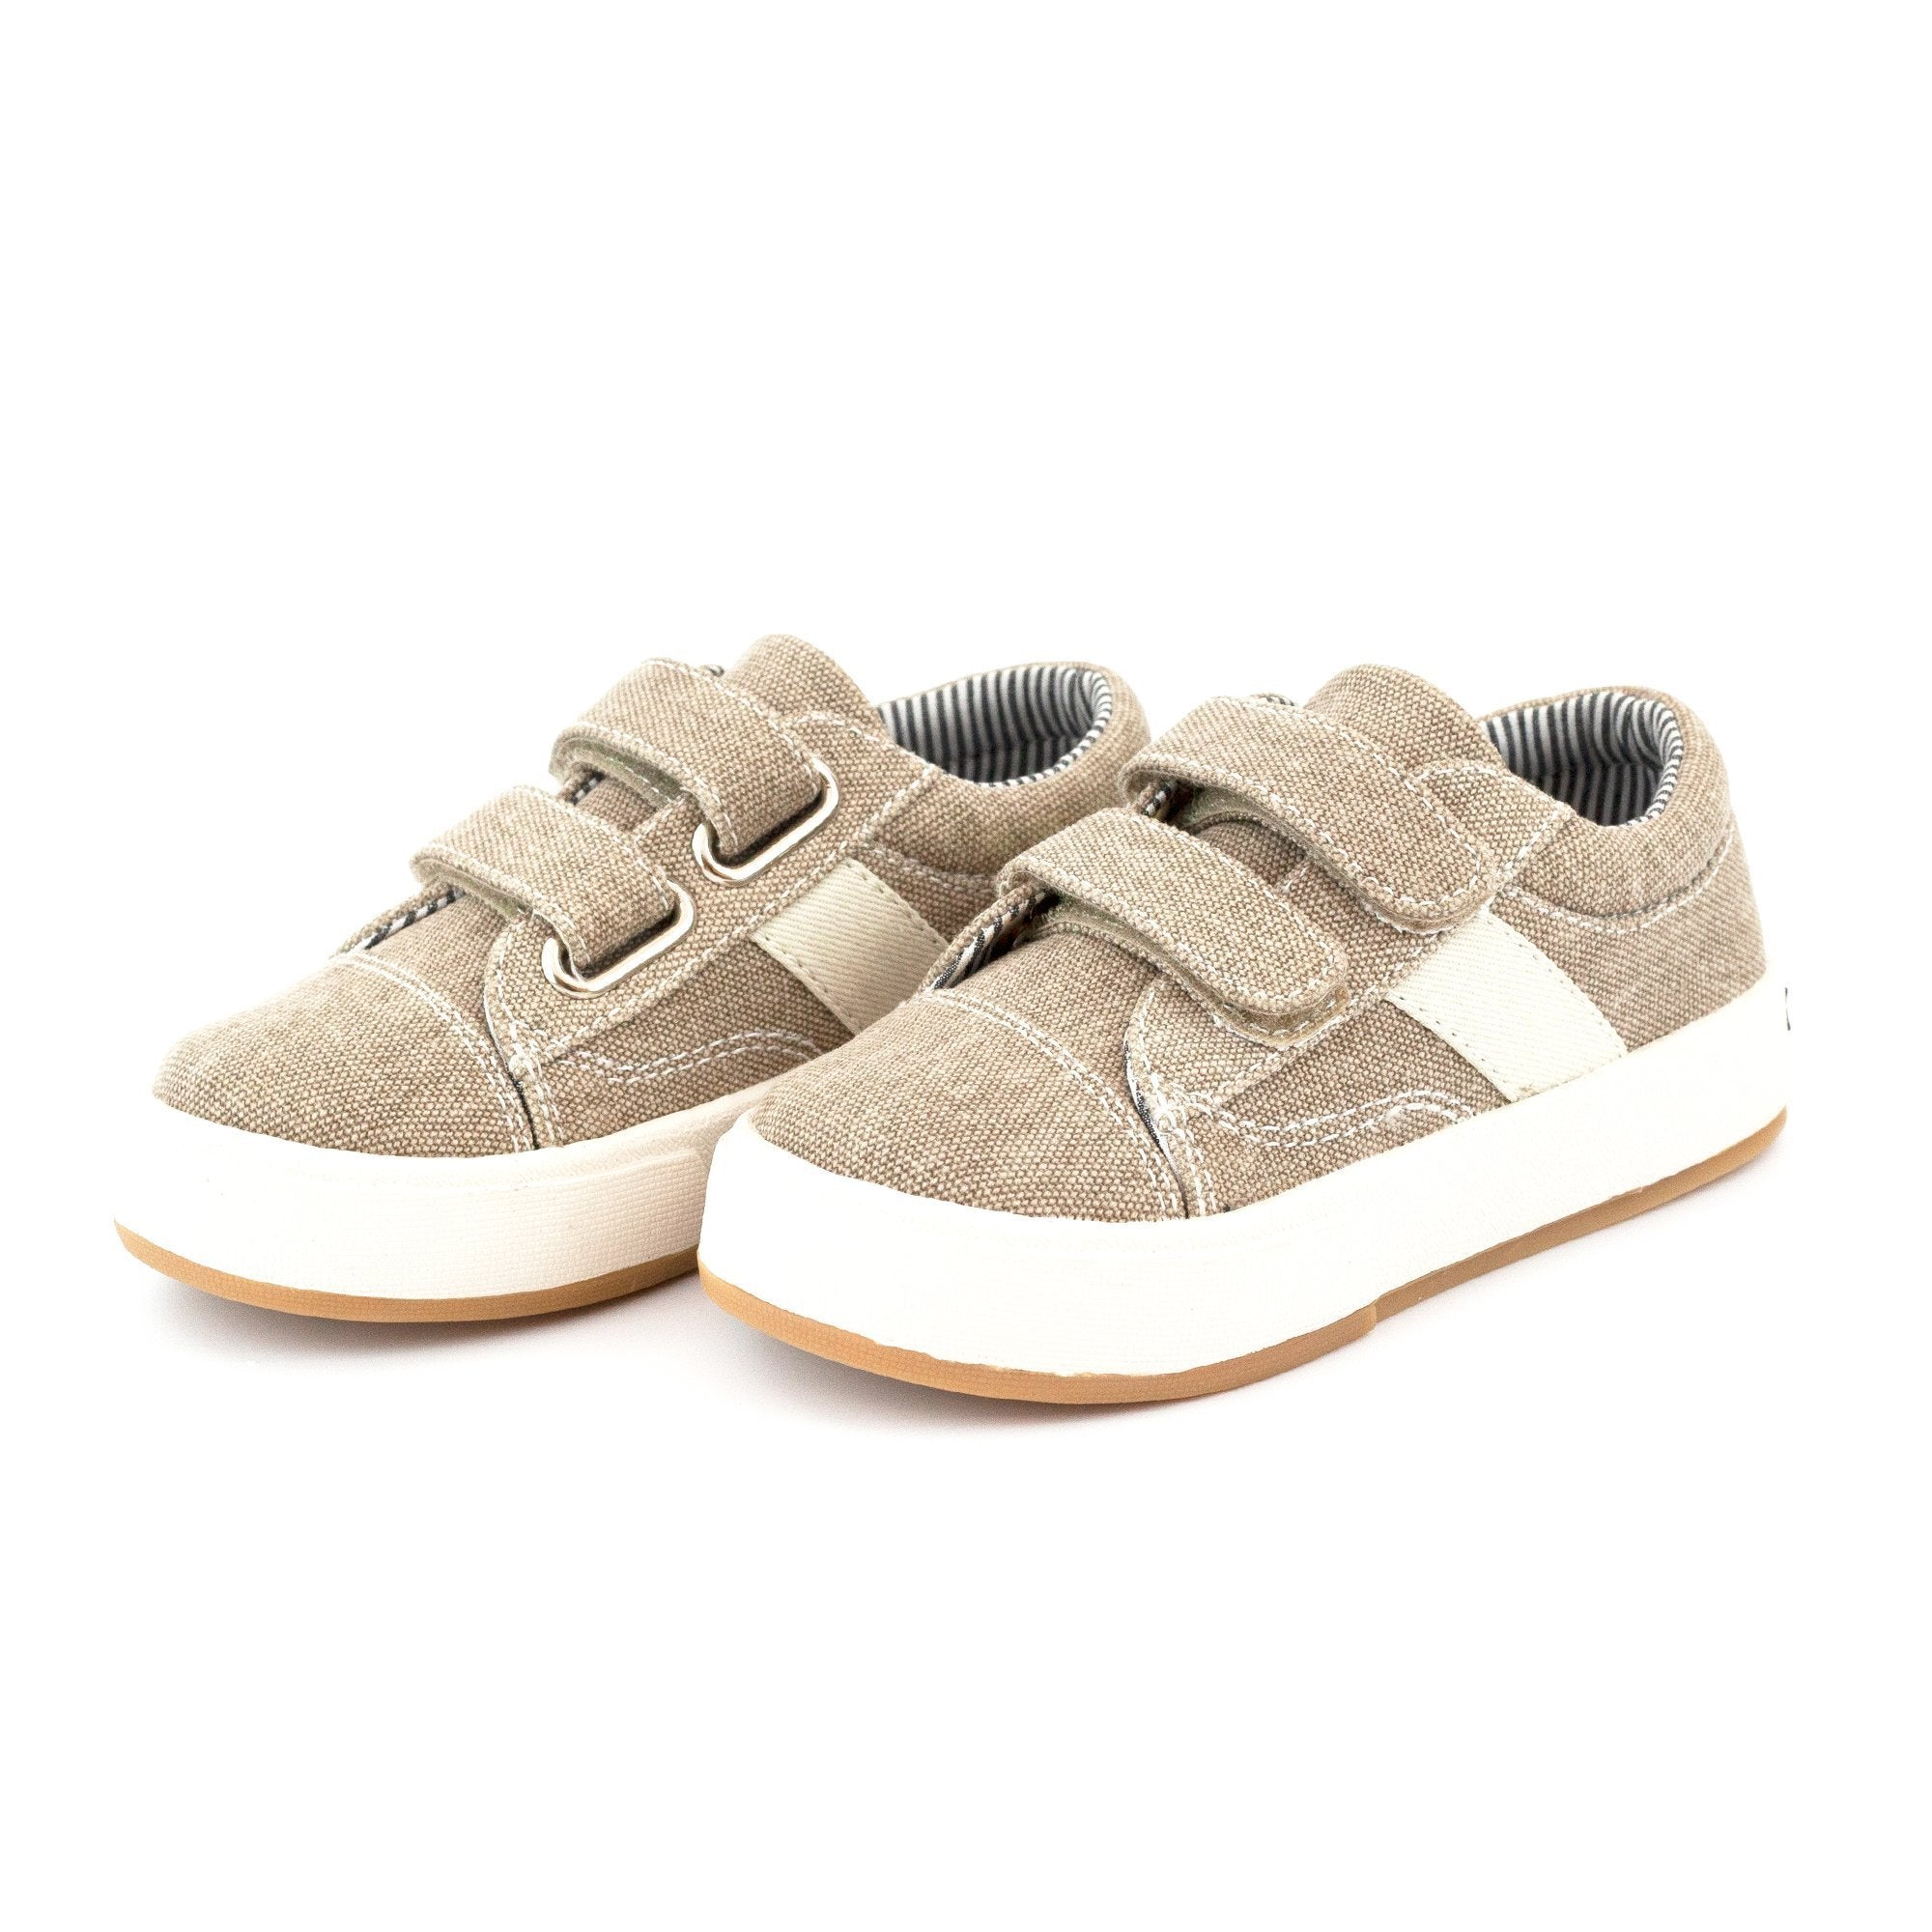 Zutano Shoe Miles Double V Kids Shoe - Khaki